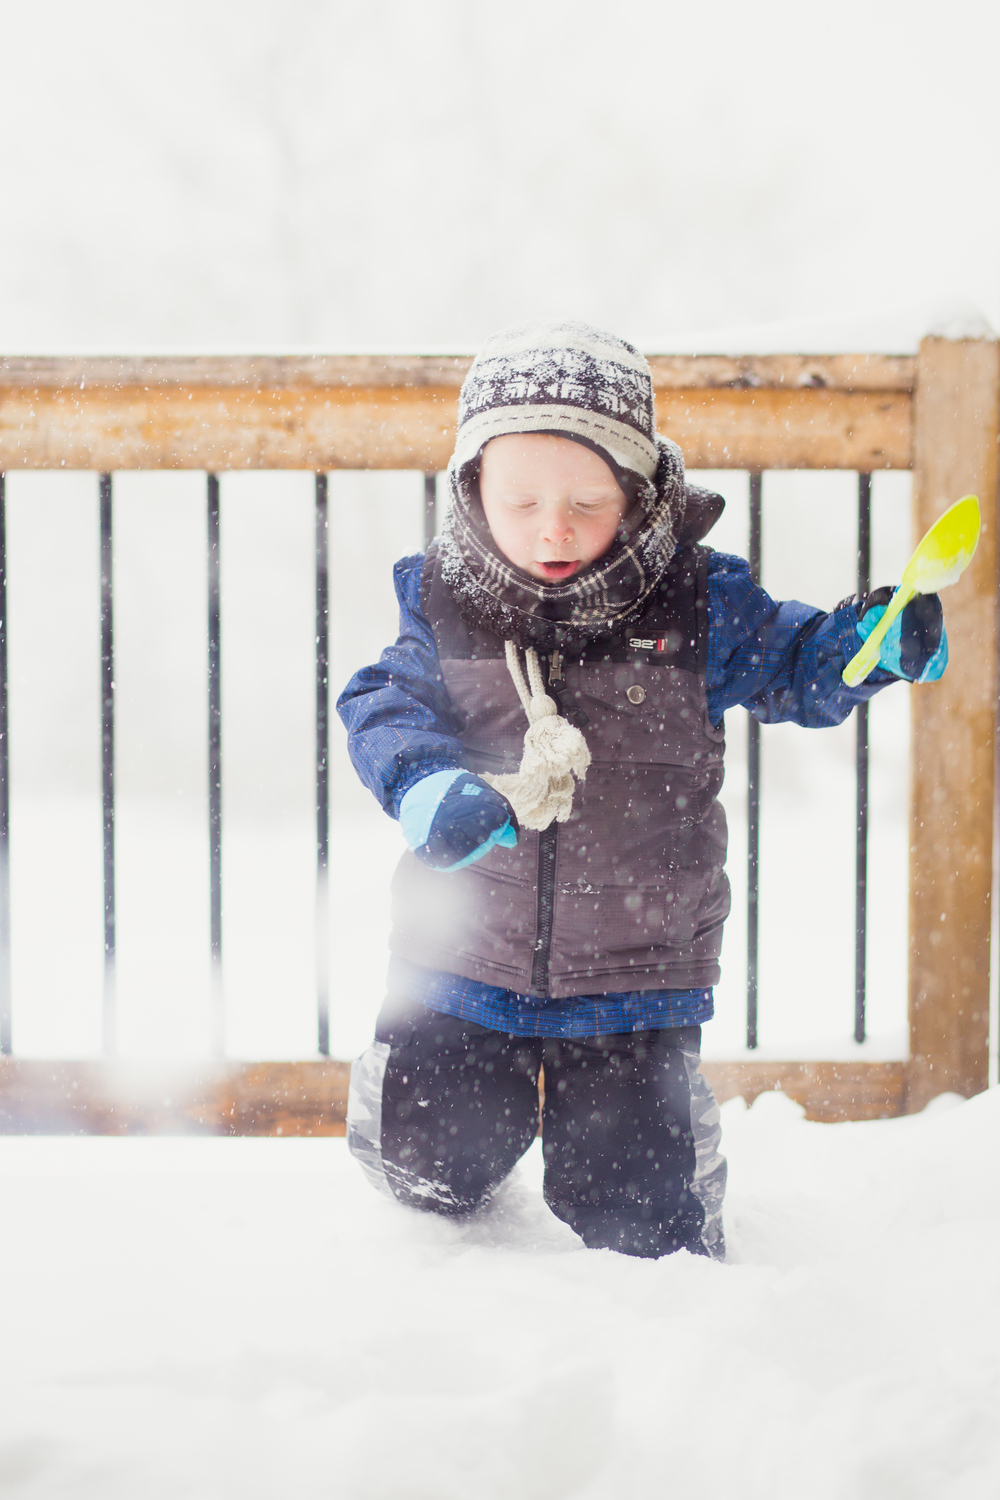 Minneapolis, Minnesota Family Lifestyle Photographer, Winter Photo, Child Playing